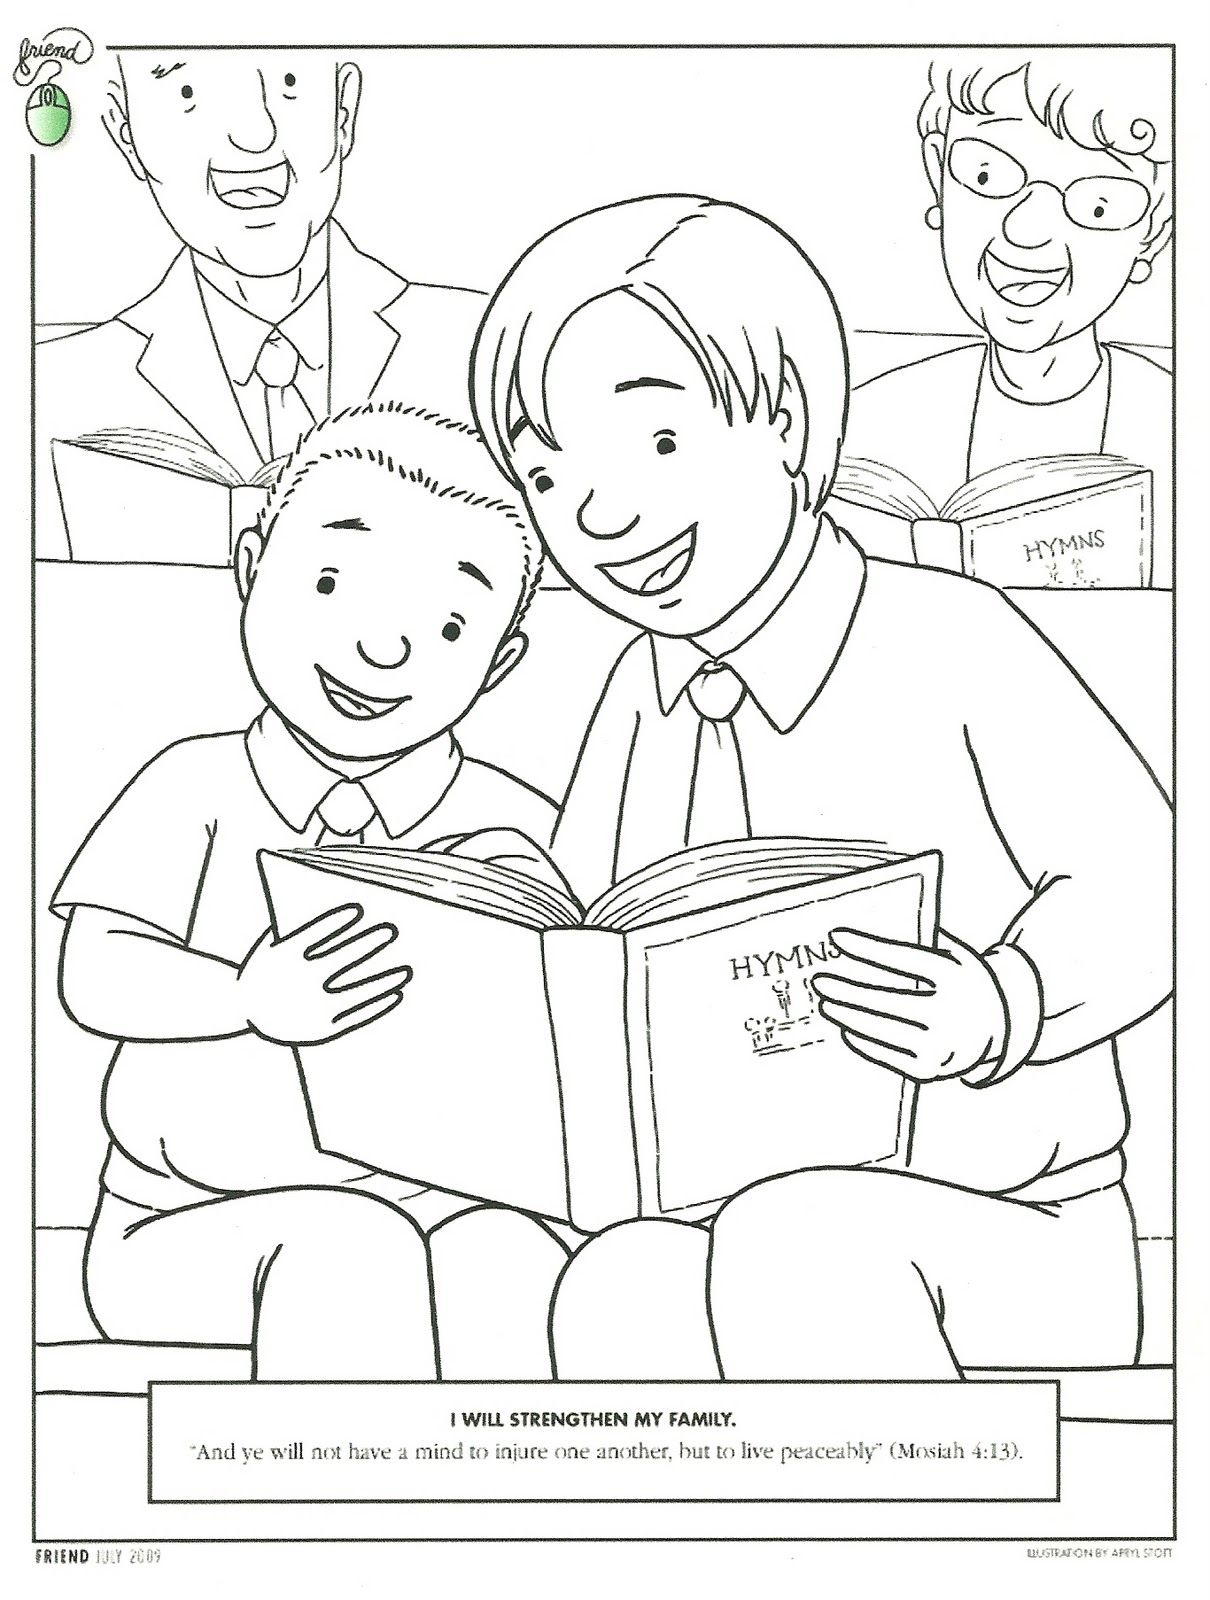 Beau Primary 3 Manual Lesson 40 Worshiping At Church Journal Page Coloring Page  From The Behold Your